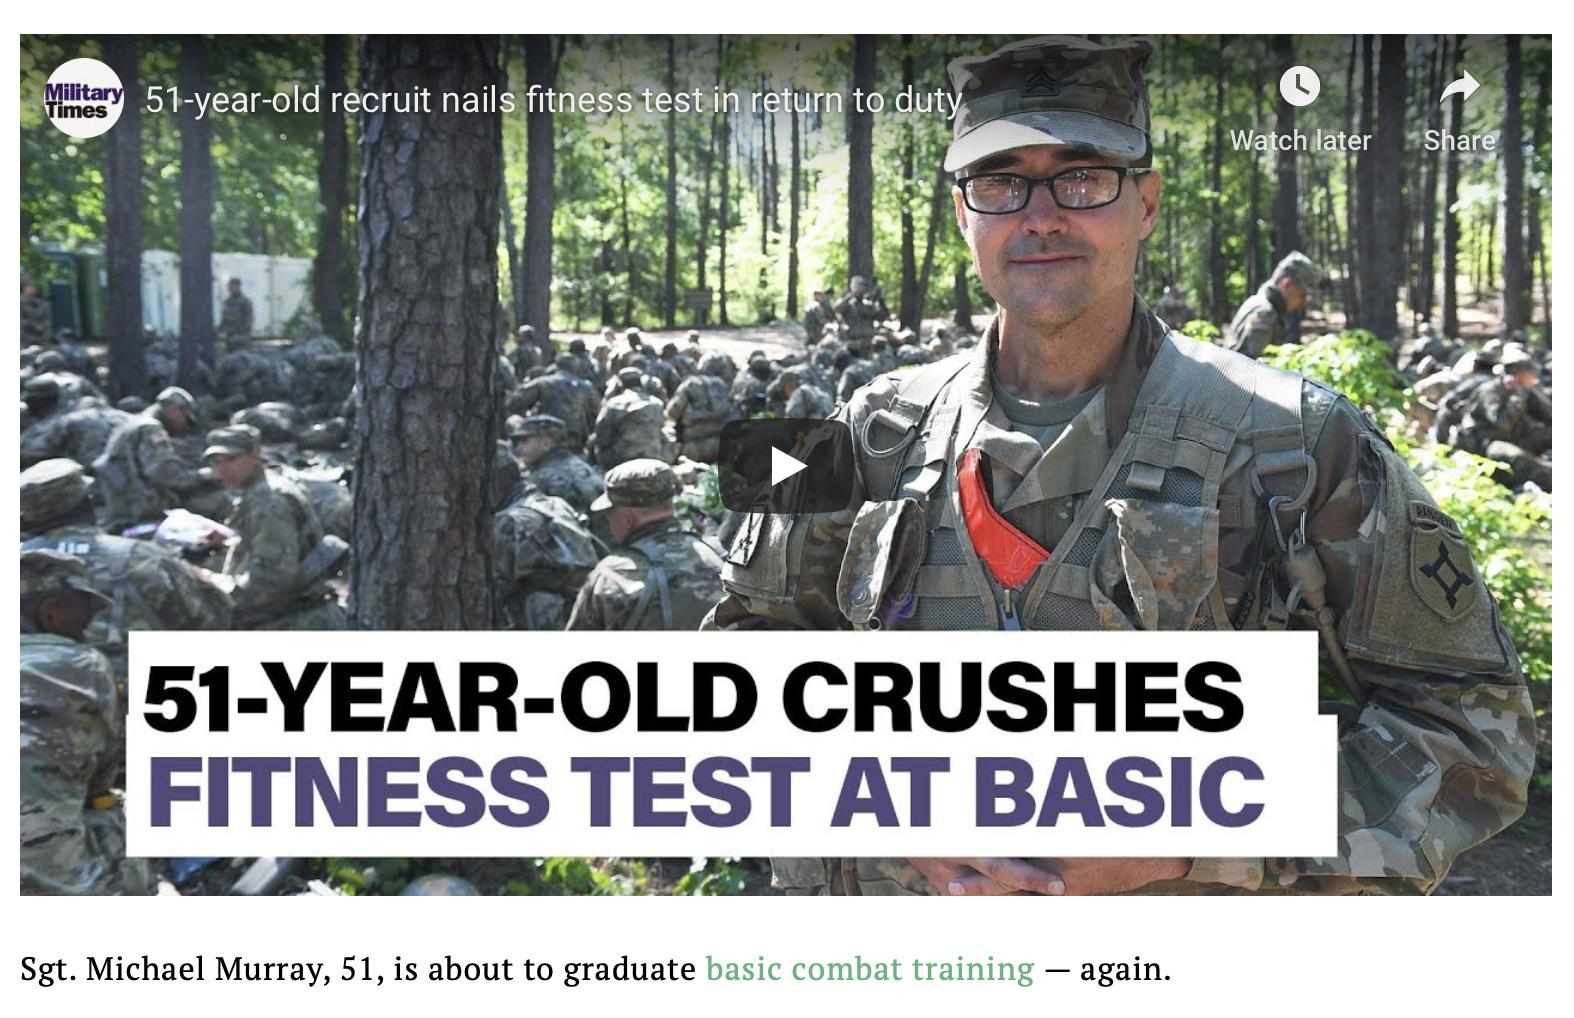 51-year-old crushes ACFT, readies for BCT graduation and EOD school